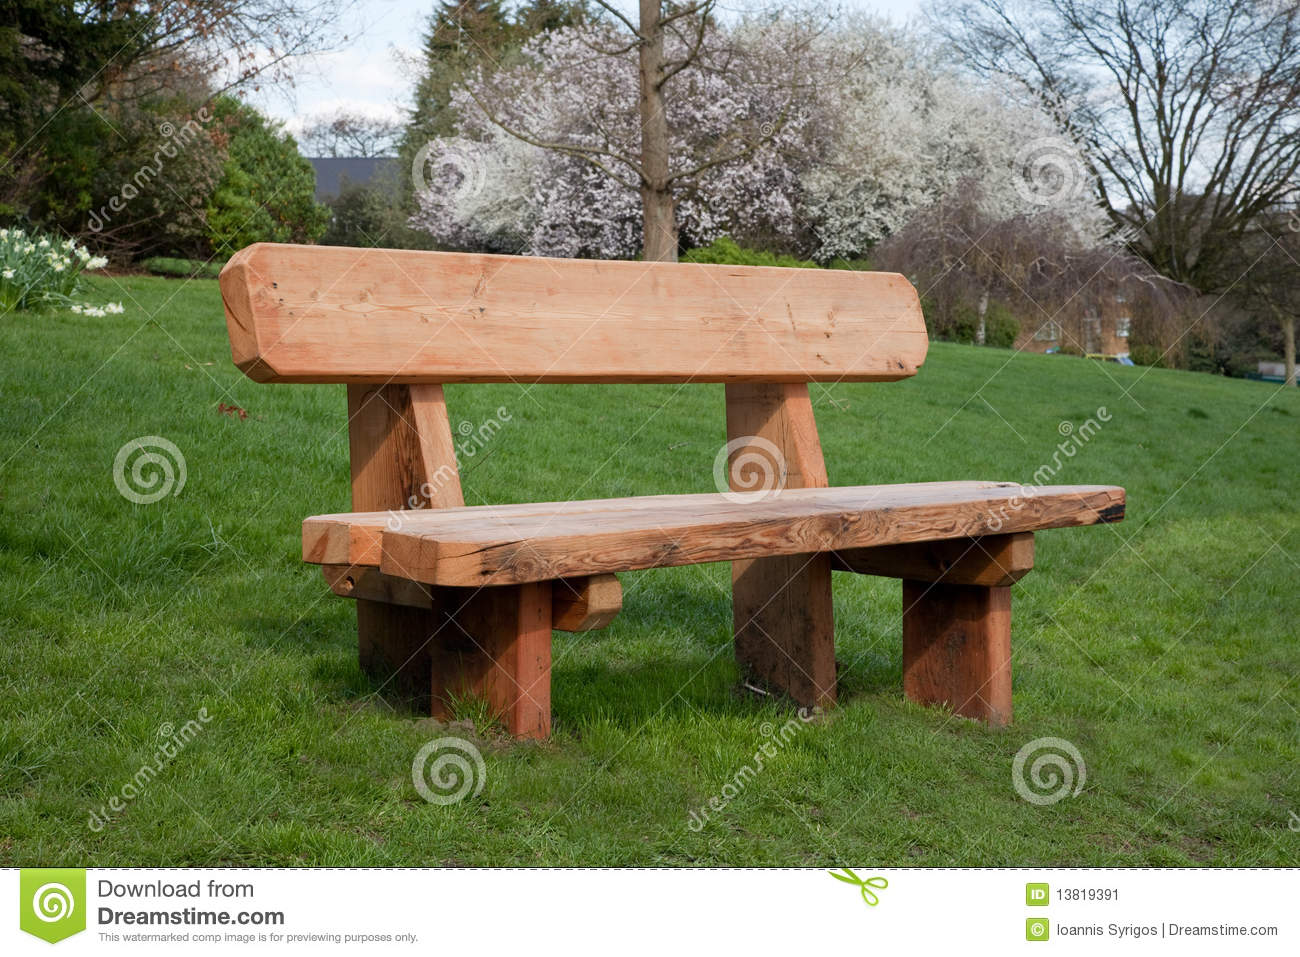 Wonderful image of Wooden Bench On Grass Stock Image Image: 13819391 with #925B39 color and 1300x957 pixels